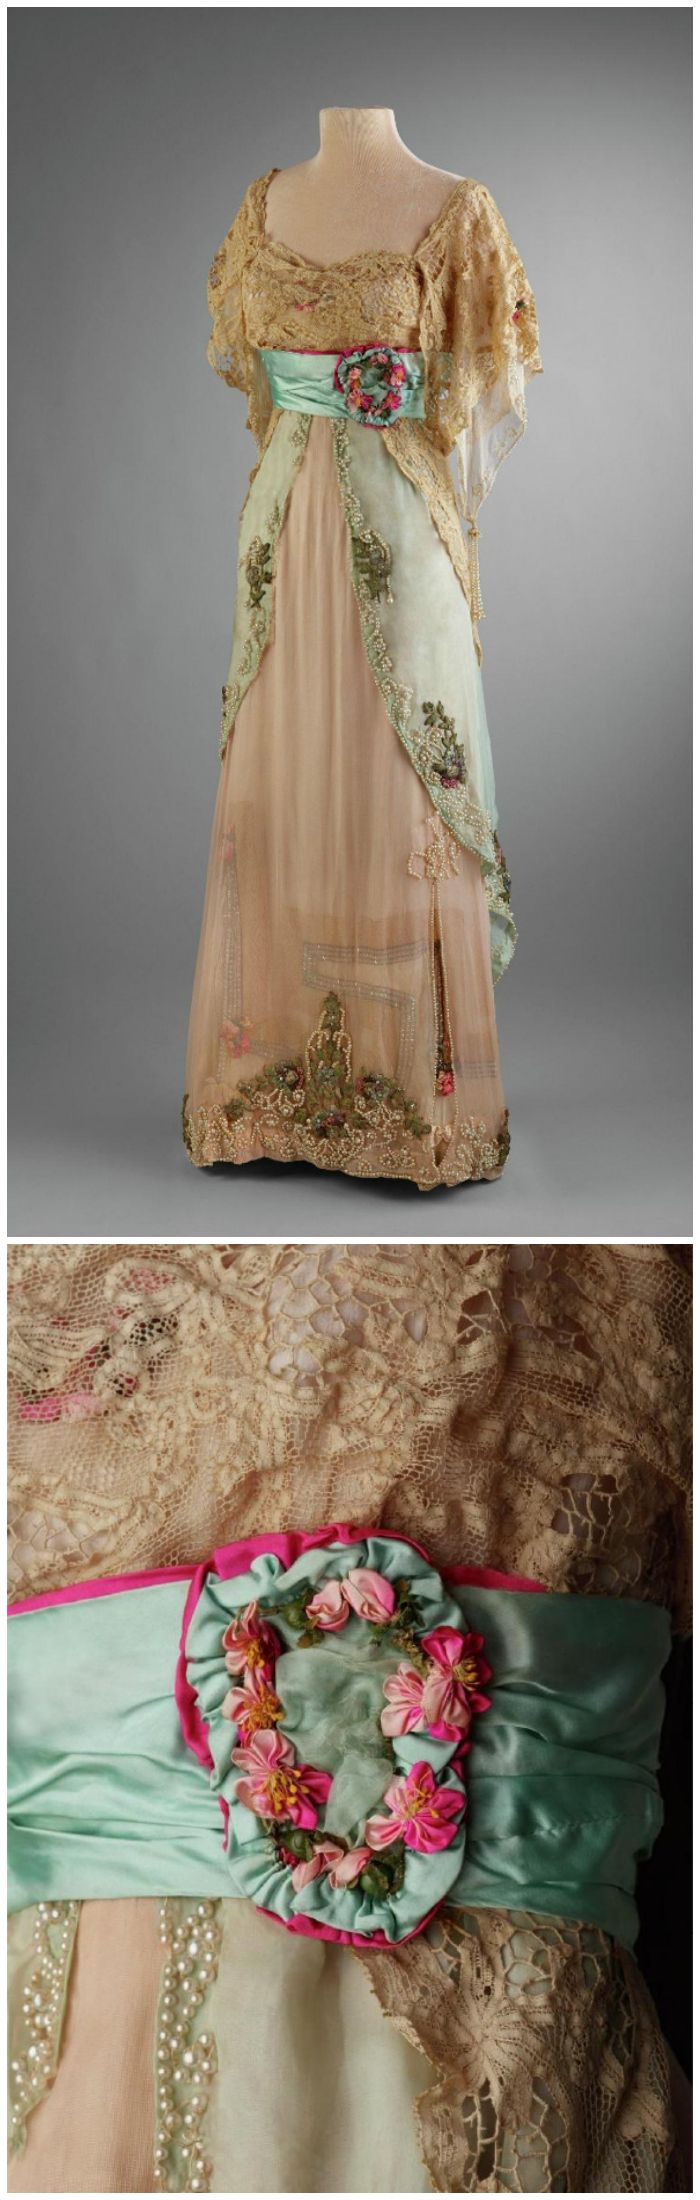 Evening dress, by Widoff, New York, 1911-13, Hillwood Estate, Museum & Gardens. High waisted Edwardian party gown with a narrow sheath underskirt of plain silk charmeuse and a multilayered overskirt of silk lawn. The short, full lace sleeves cover a white lawn undersleeve edged with miniature pearls and ending in pearl tassels. A pale turquoise satin waist sash backed with bright pink satin closes on the left side with a decorative oval medallion of the pink ribbon flowers.